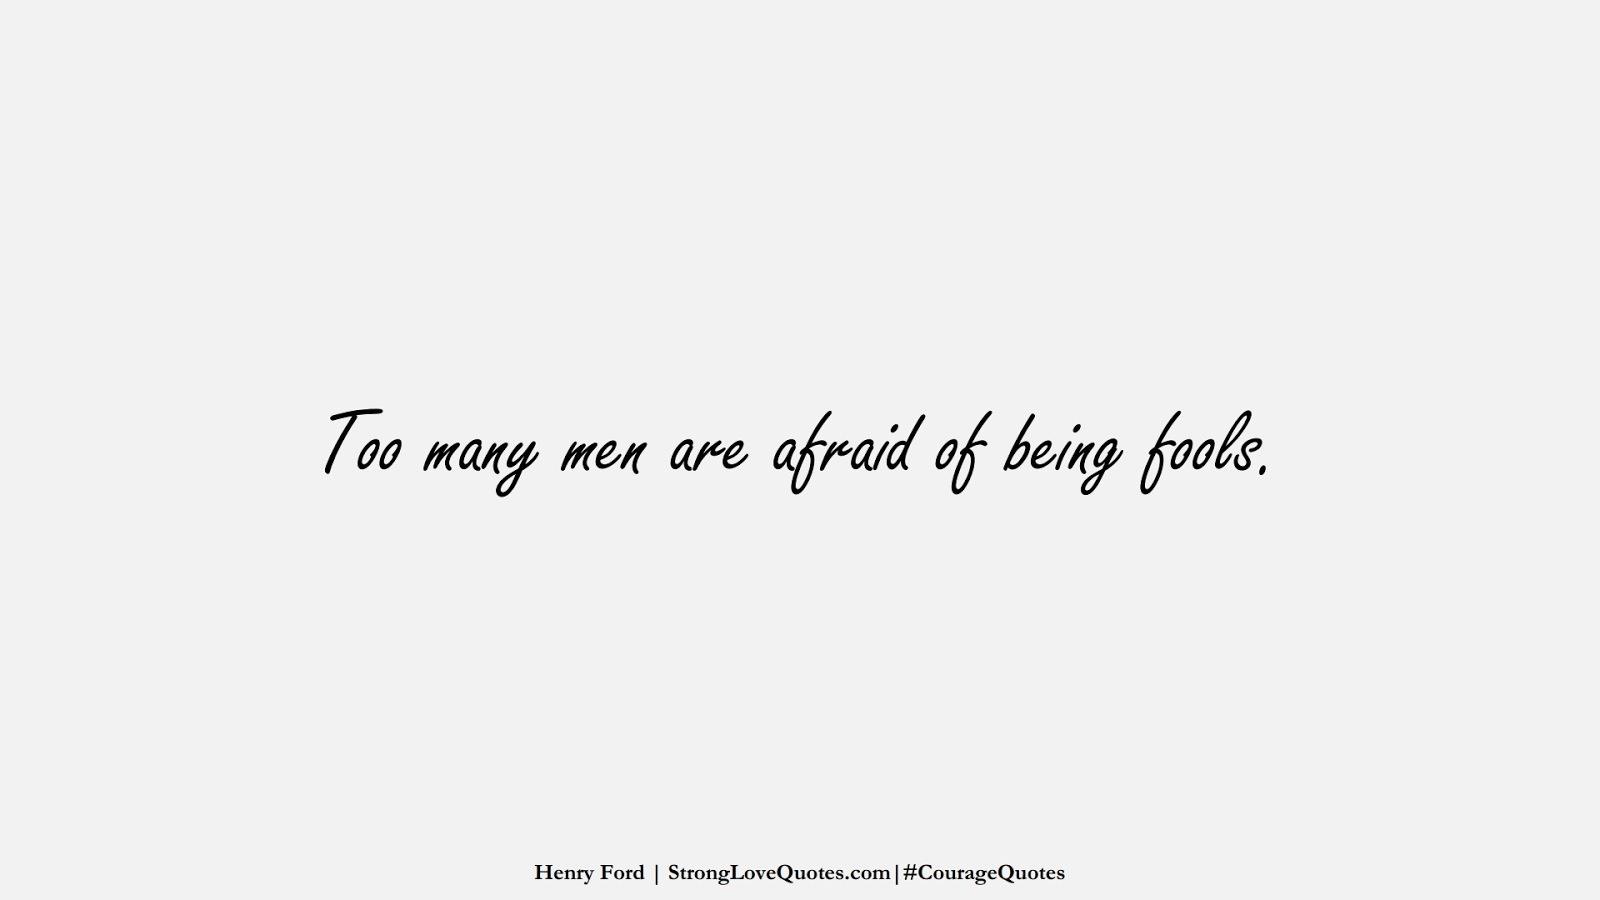 Too many men are afraid of being fools. (Henry Ford);  #CourageQuotes